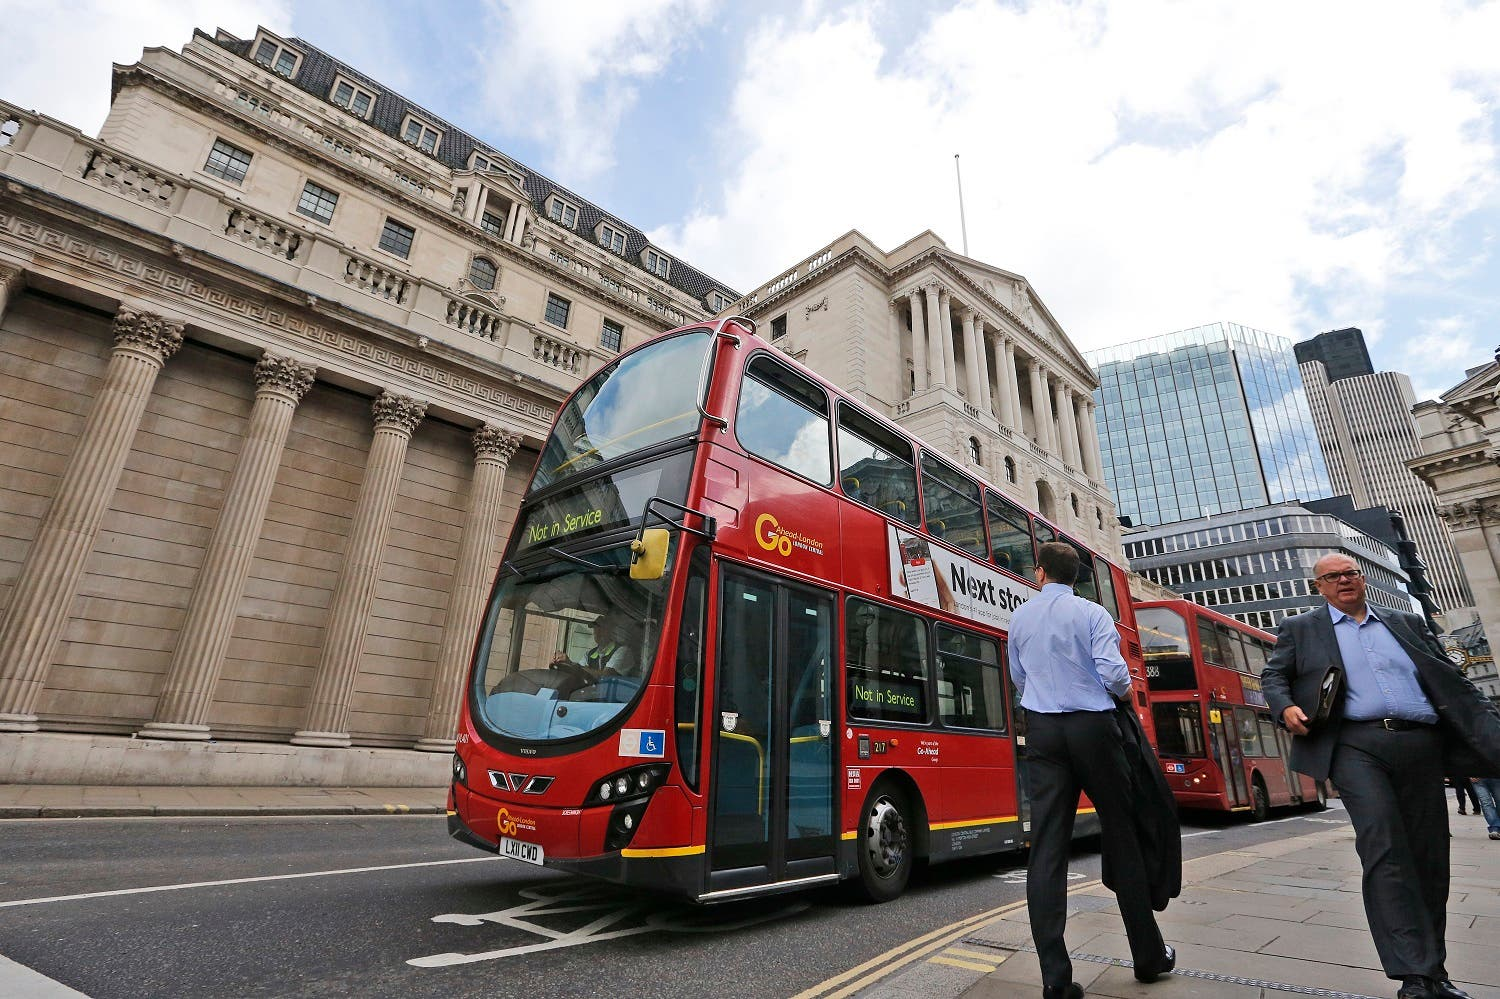 A London bus passes the Bank of England in London, Thursday, Aug. 4, 2016. The Bank of England is expected to cut interest rates close to zero and possibly inject billions in new money into the economy to help it endure the shock of the vote to leave the European Union AP